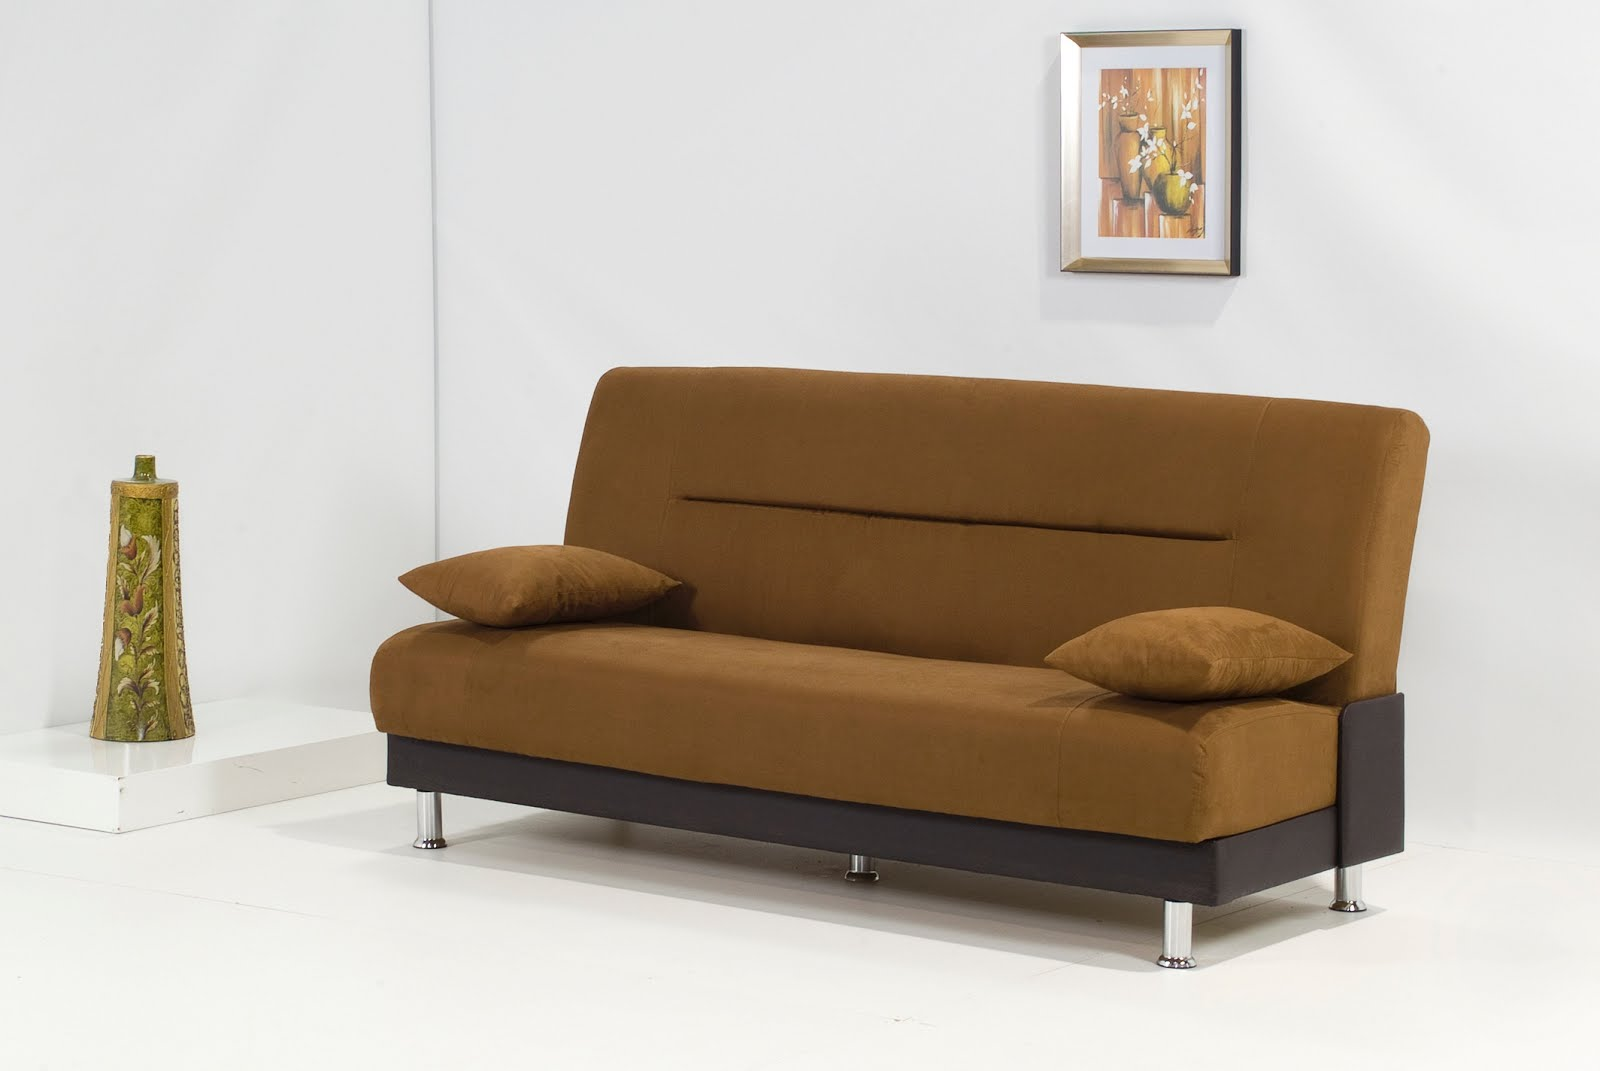 Simple review about living room furniture sleeper sofas for small spaces - Sofa sleepers for small spaces image ...